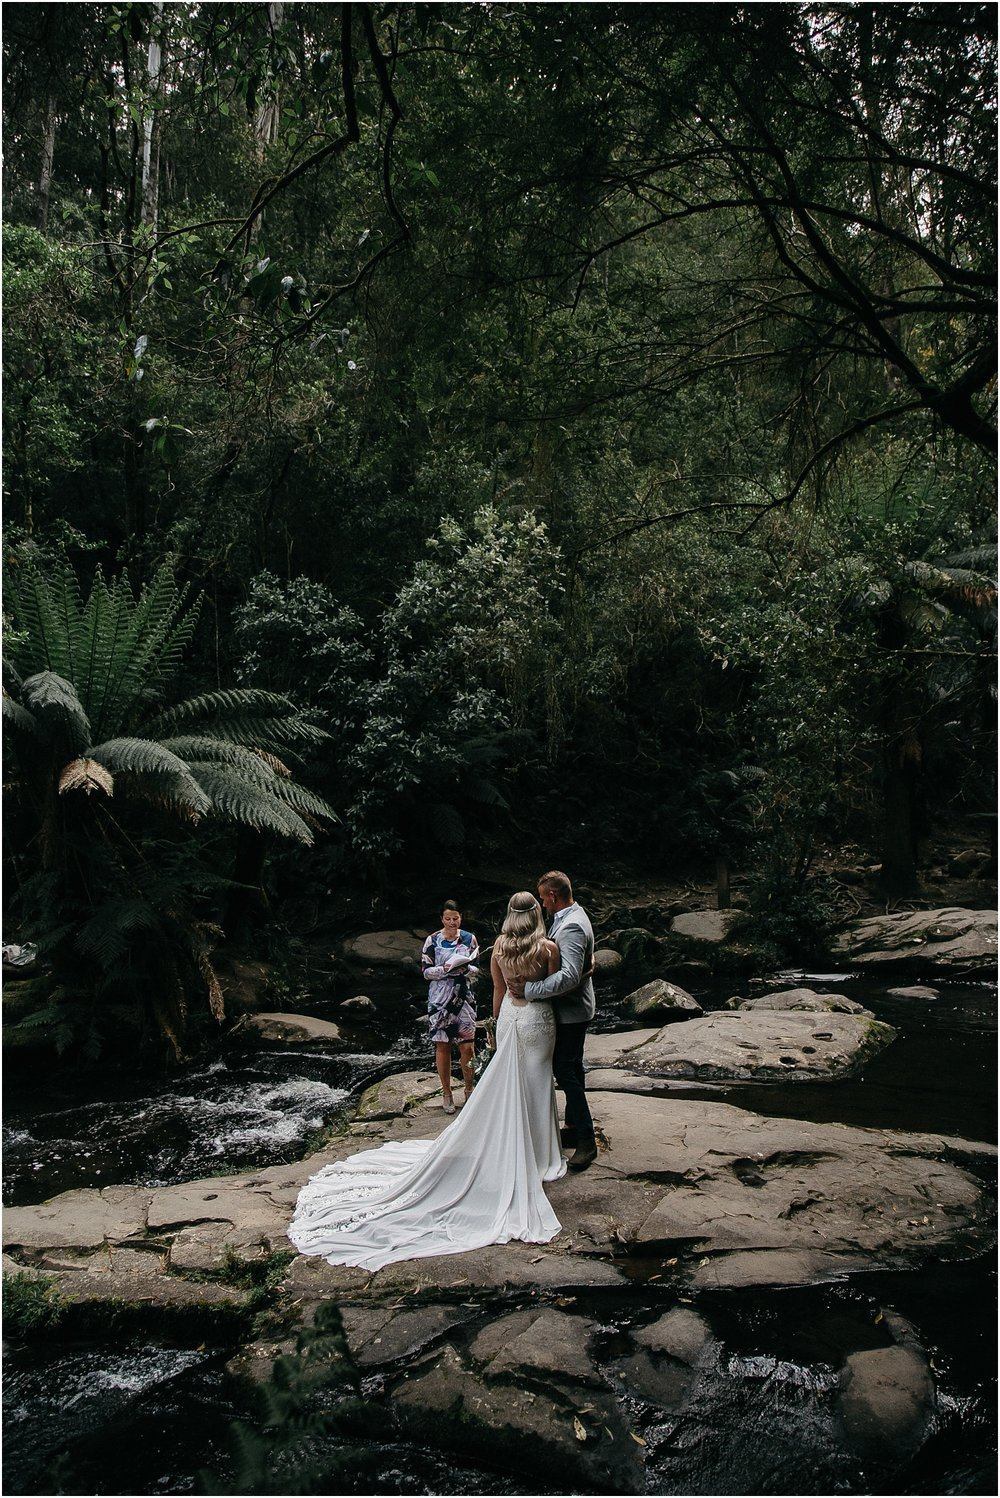 Renee and Ash's real elopement in Lorne on the Great Ocean Roadwith the ceremony at erskin falls._0078.jpg